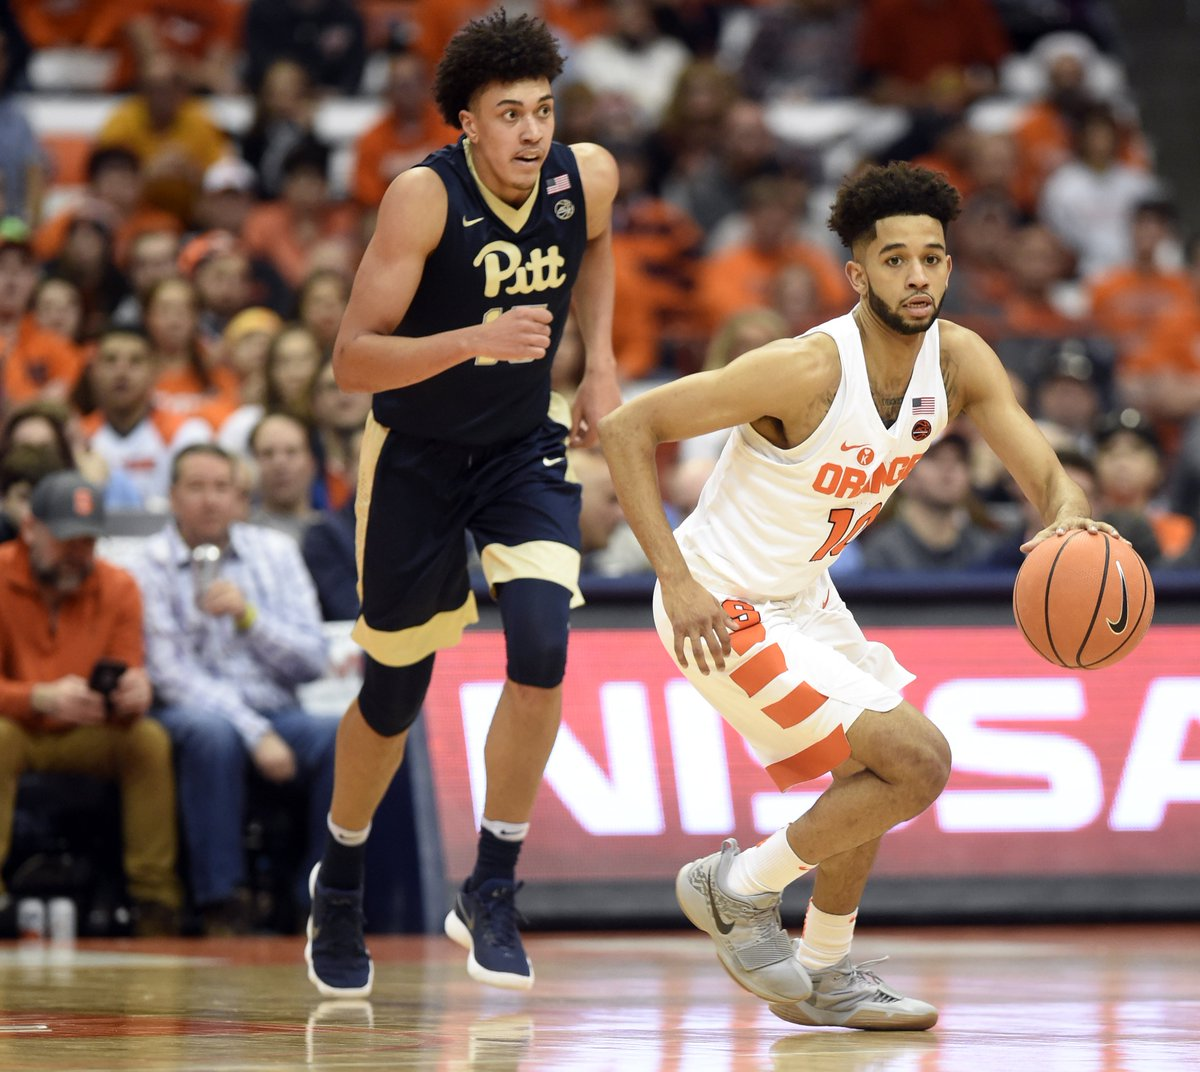 Syracuse Basketball On Twitter Howard Washington Is Exactly Where